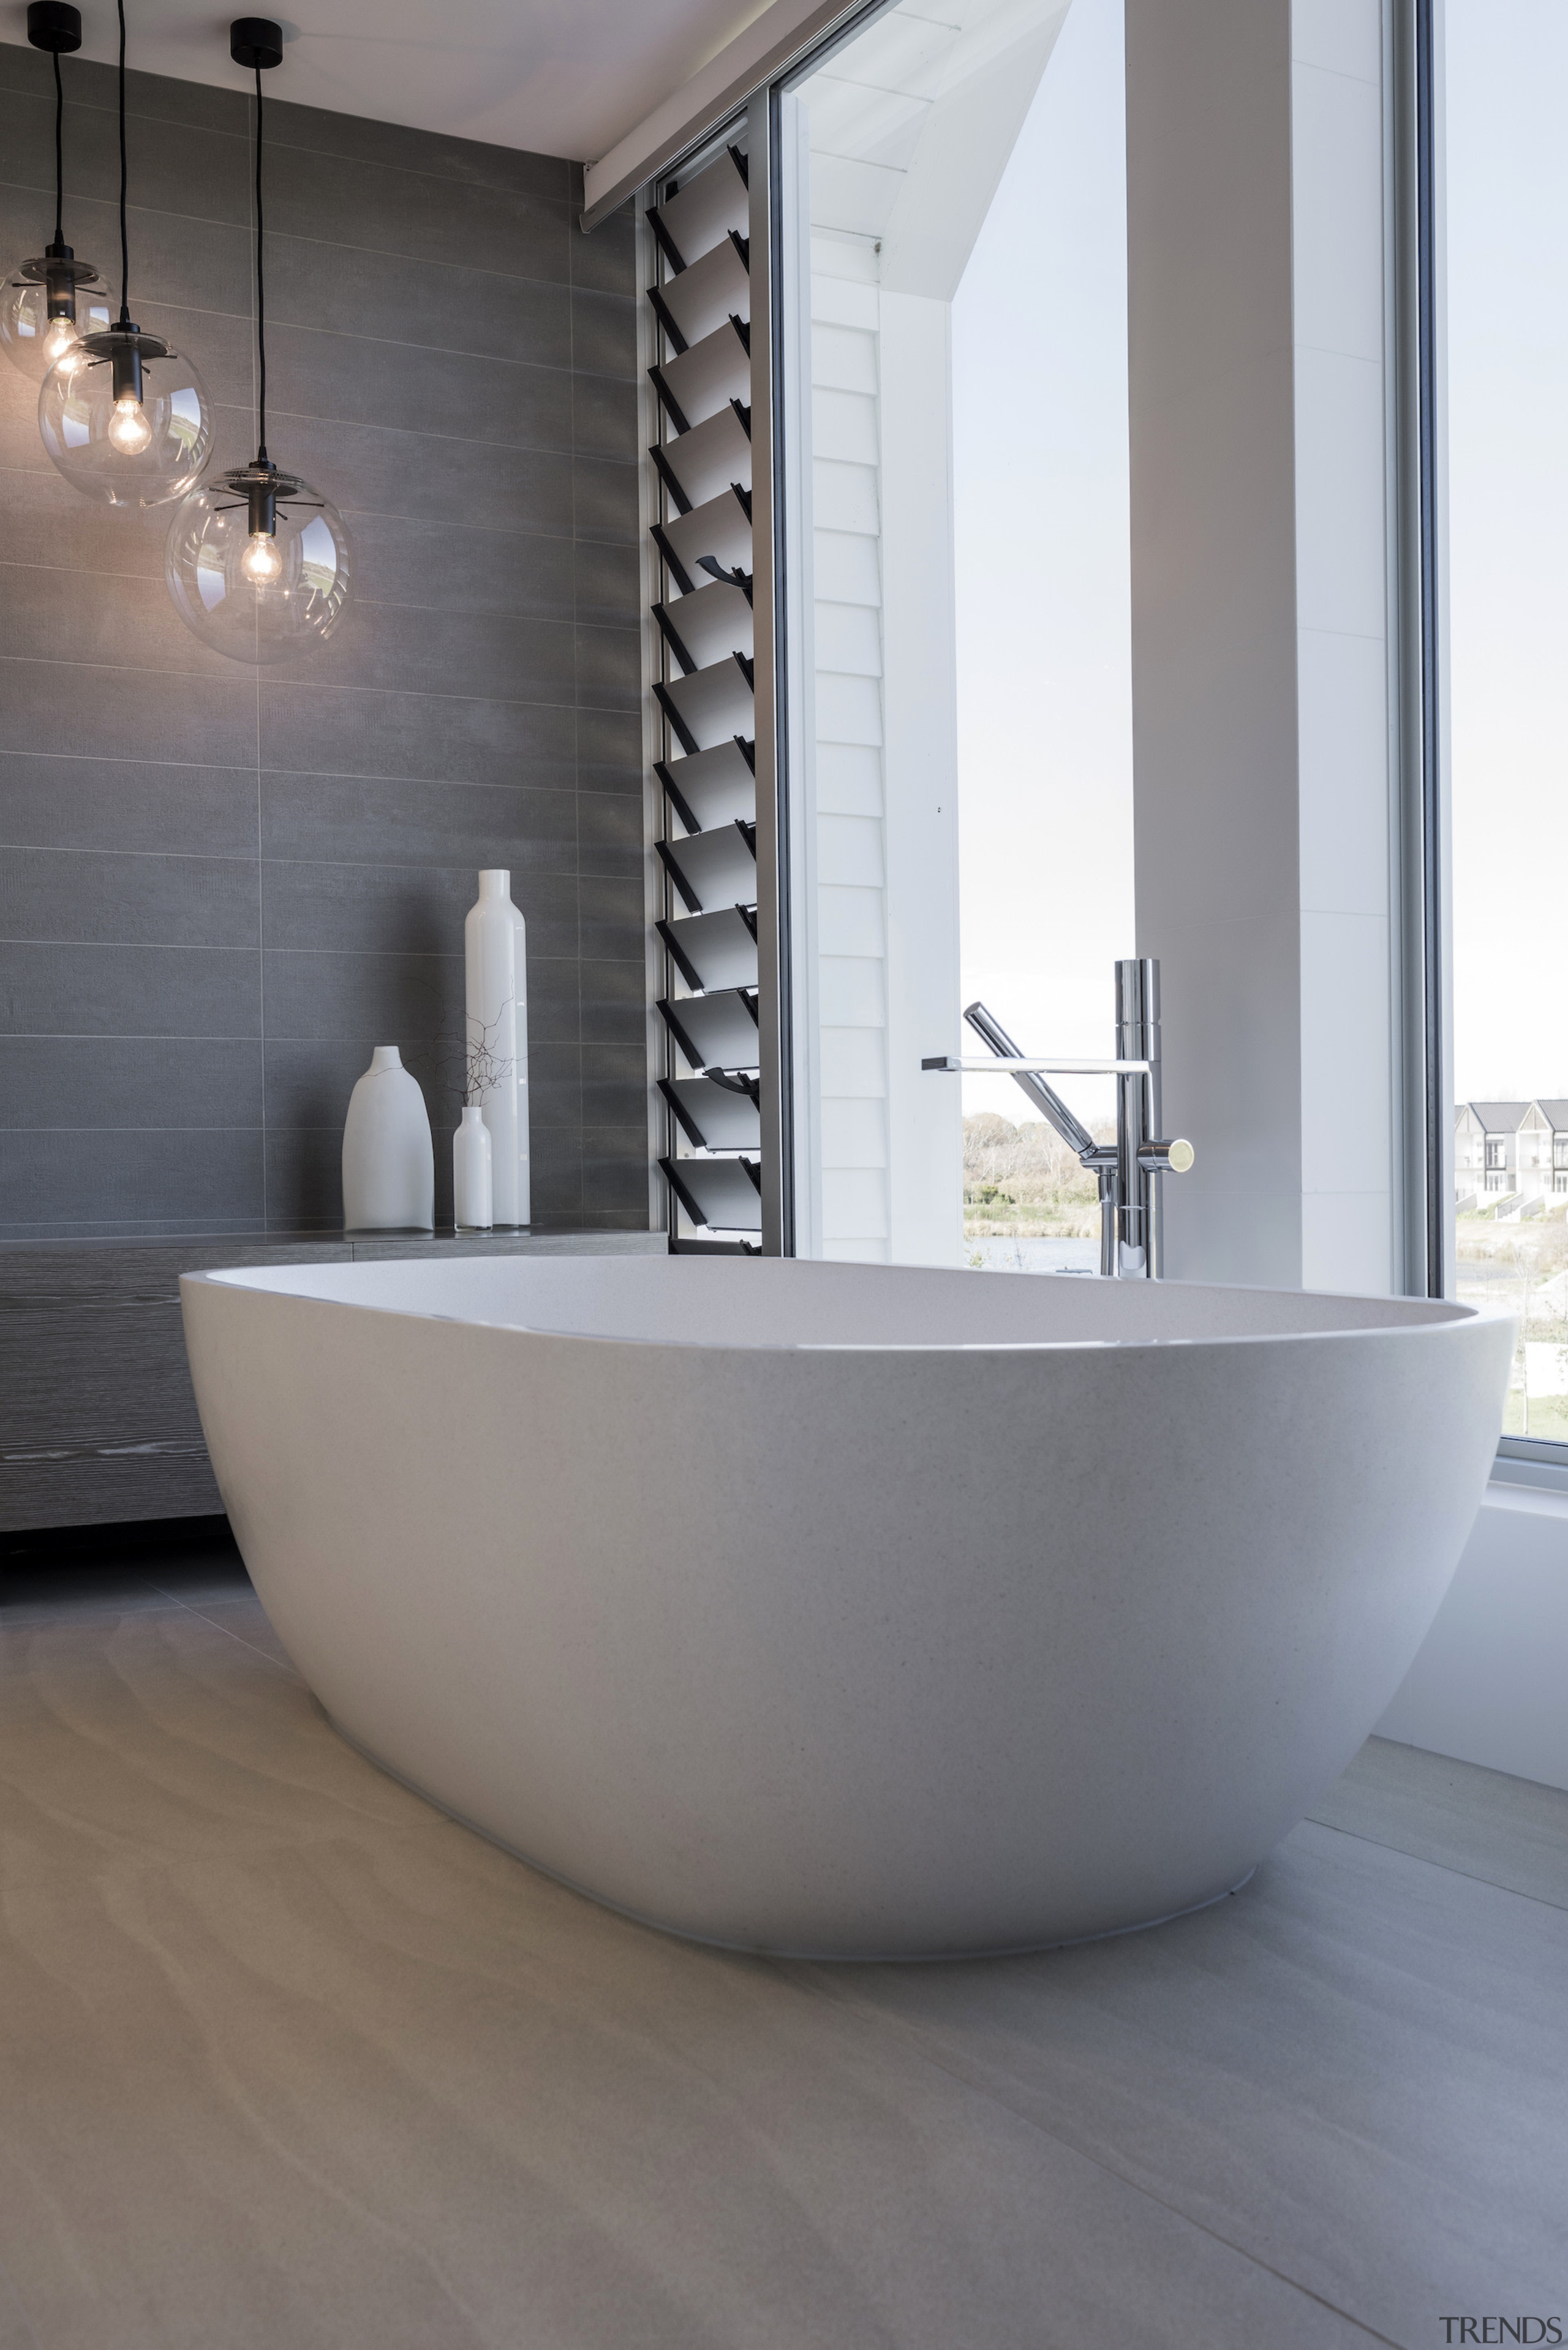 The curvaceous free-standing tub is the centrepiece of bathroom, ceramic, floor, flooring, interior design, plumbing fixture, tap, tile, gray, white